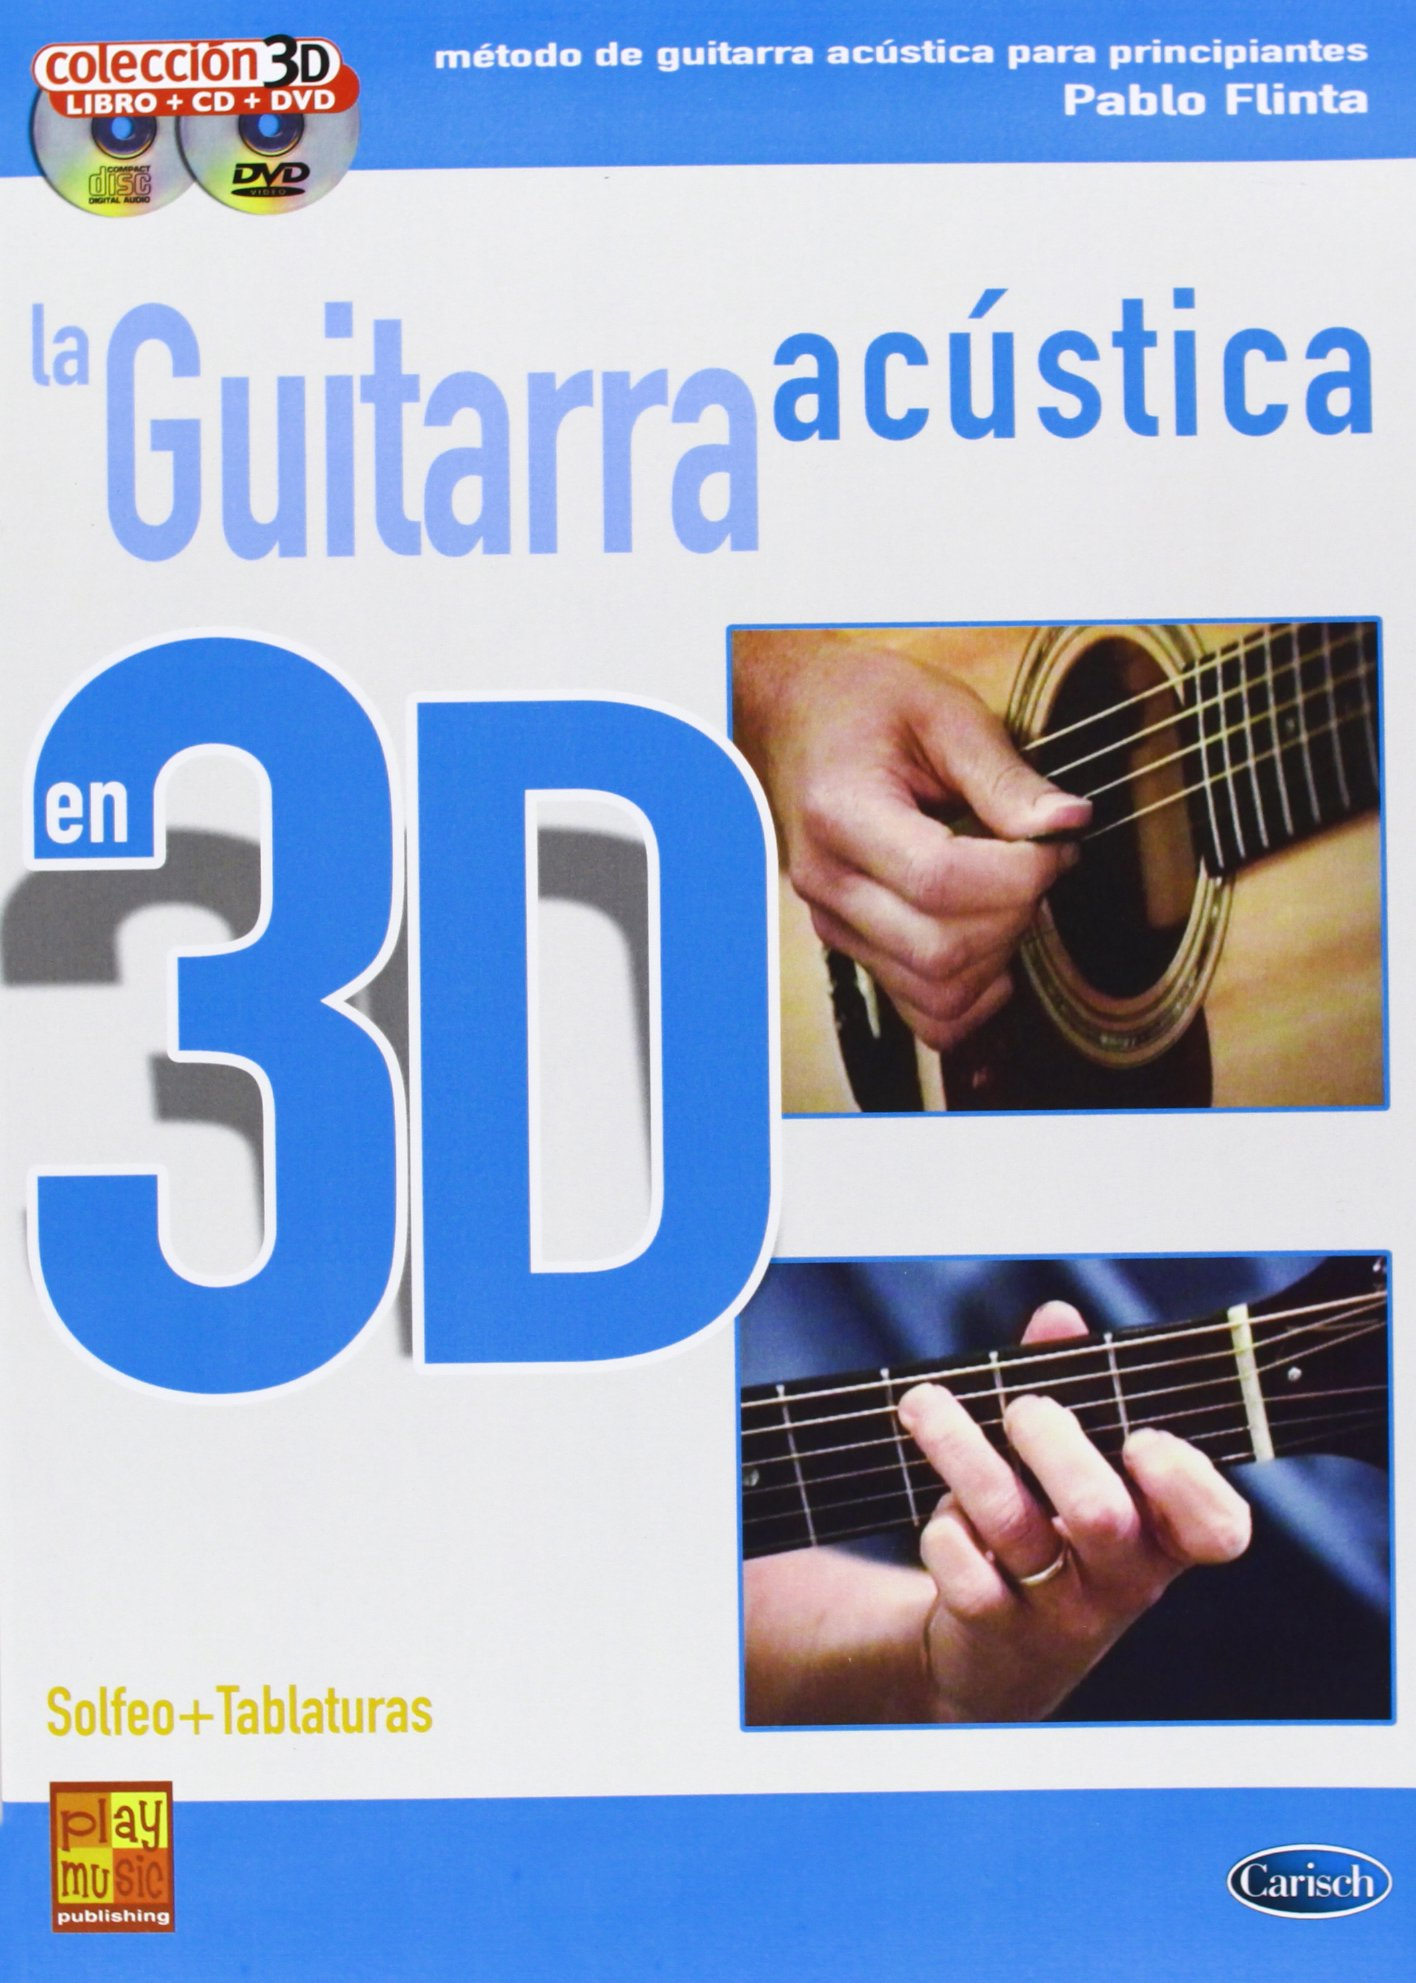 GUITARRA ACUSTICA 3D+CD+DVD (Play Music Espana): Amazon.es: Flinta ...